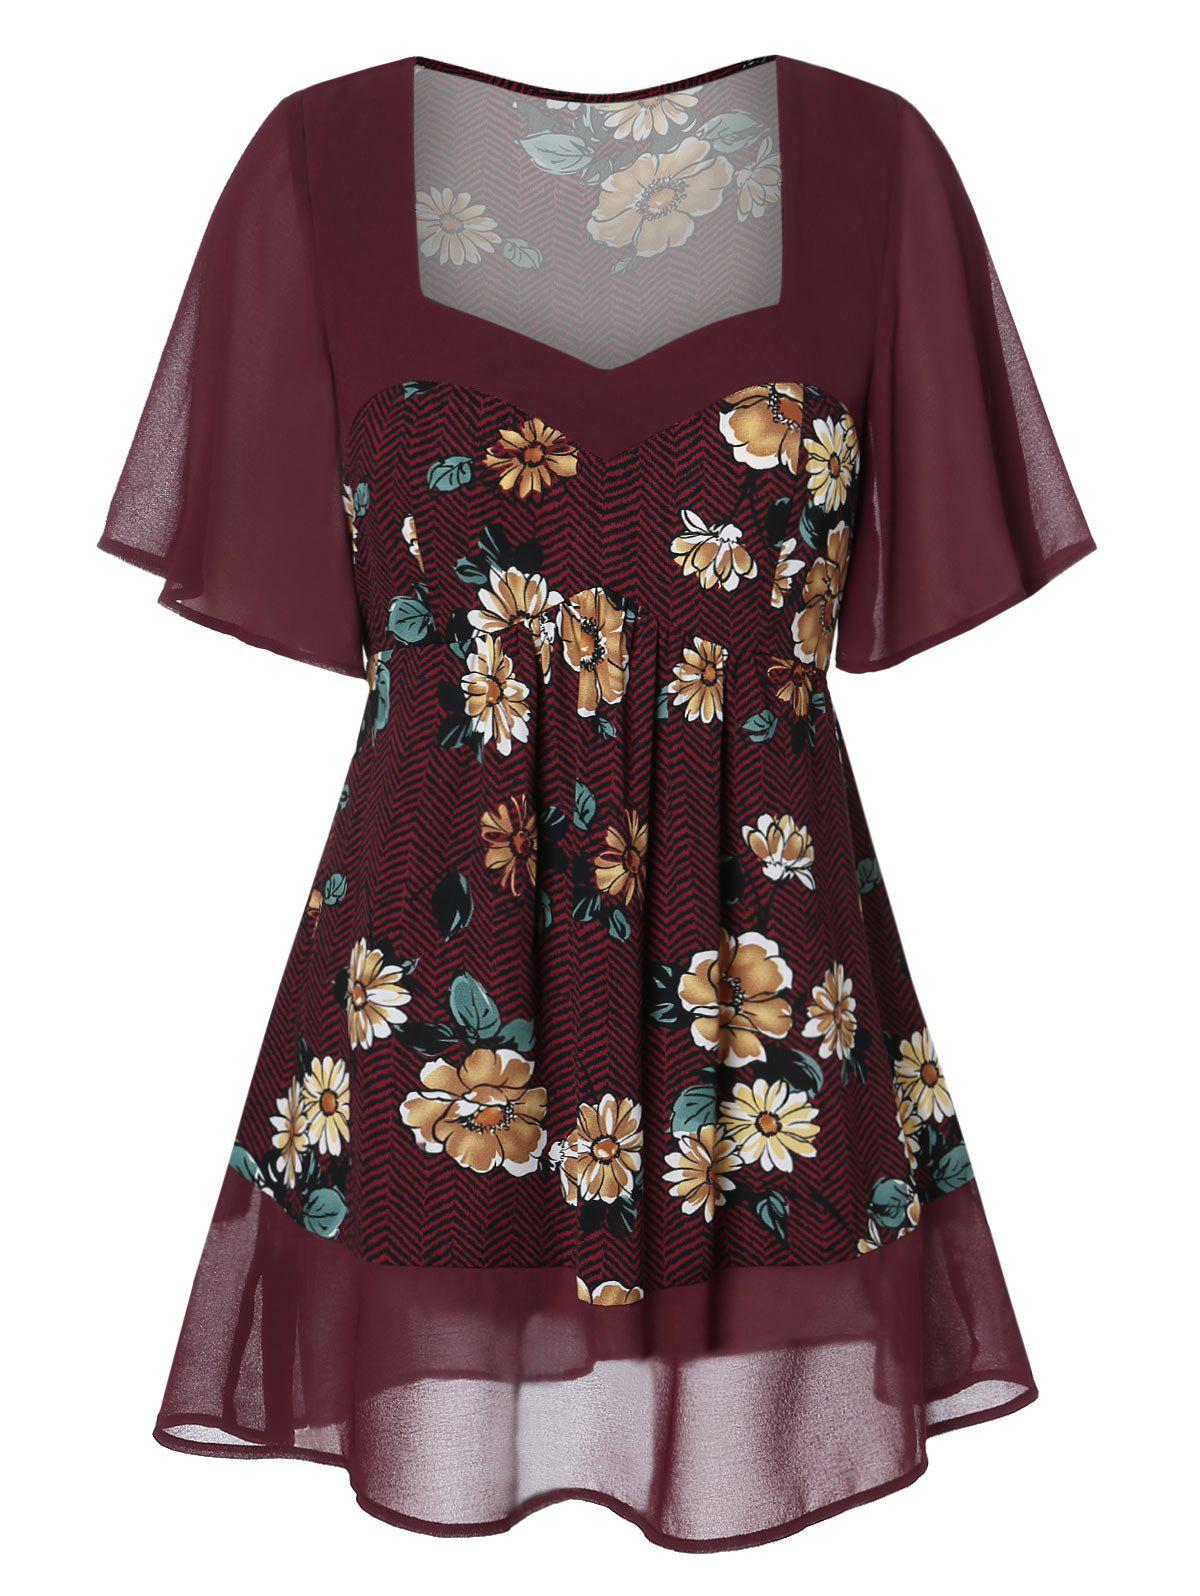 Plus Size Sweetheart Neck Floral Blouse - RED WINE 5X